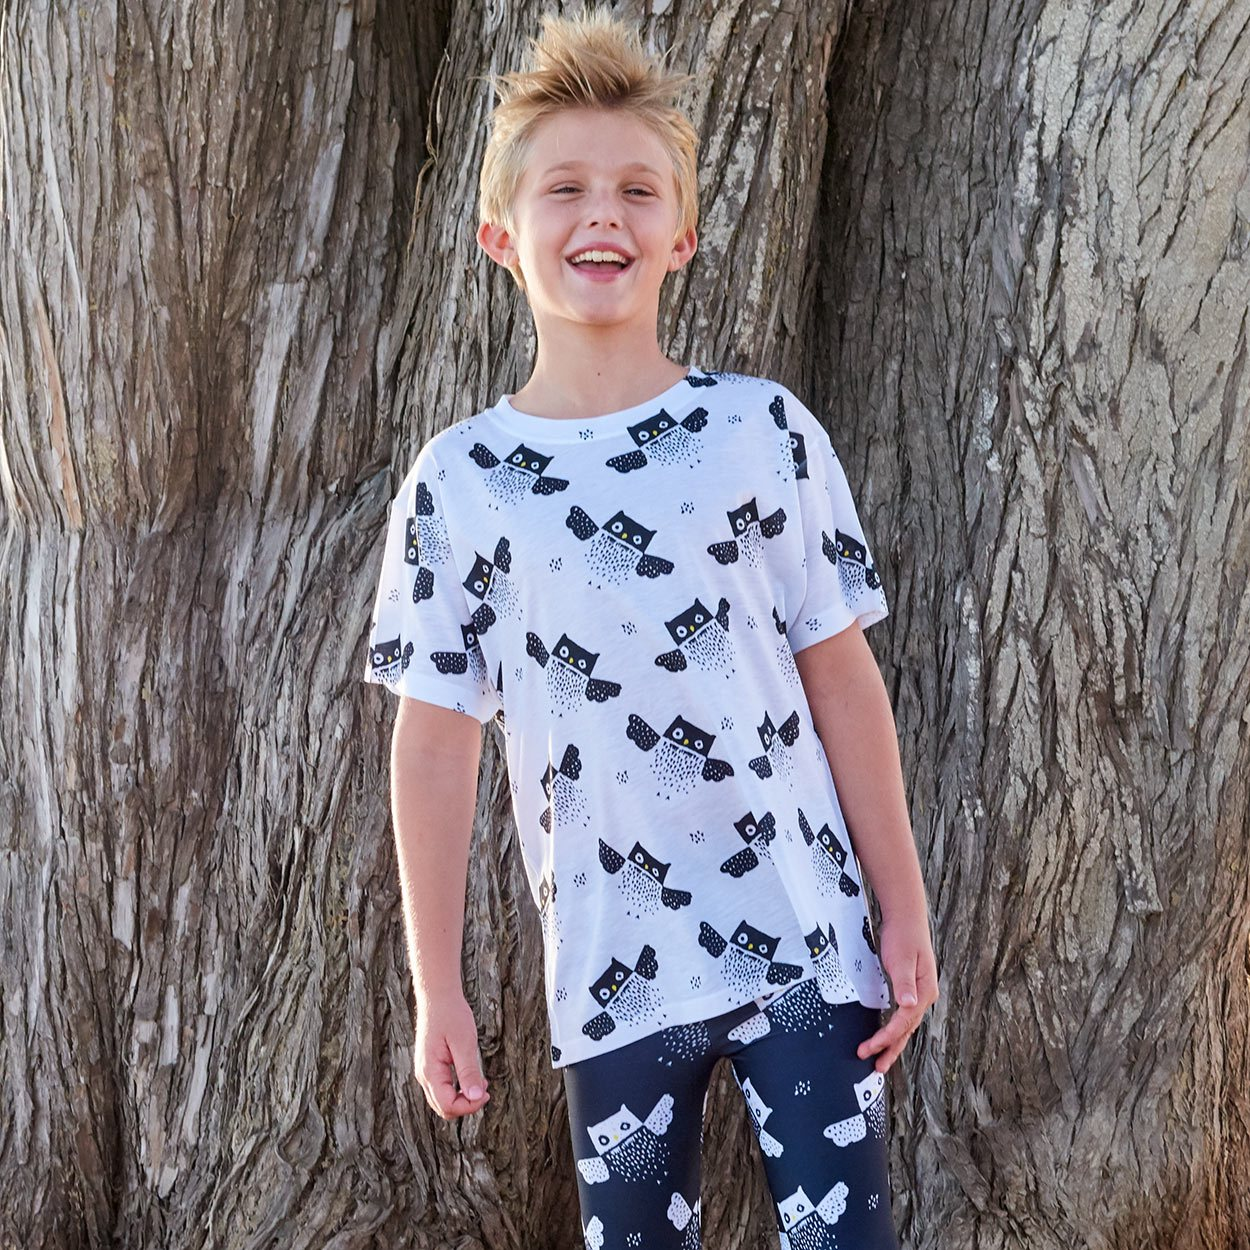 Kids Owls Pattern Graphic Tshirt Black White Size Xs L Unisex Smiling Boy At The Beach By A Tree Sunpoplife